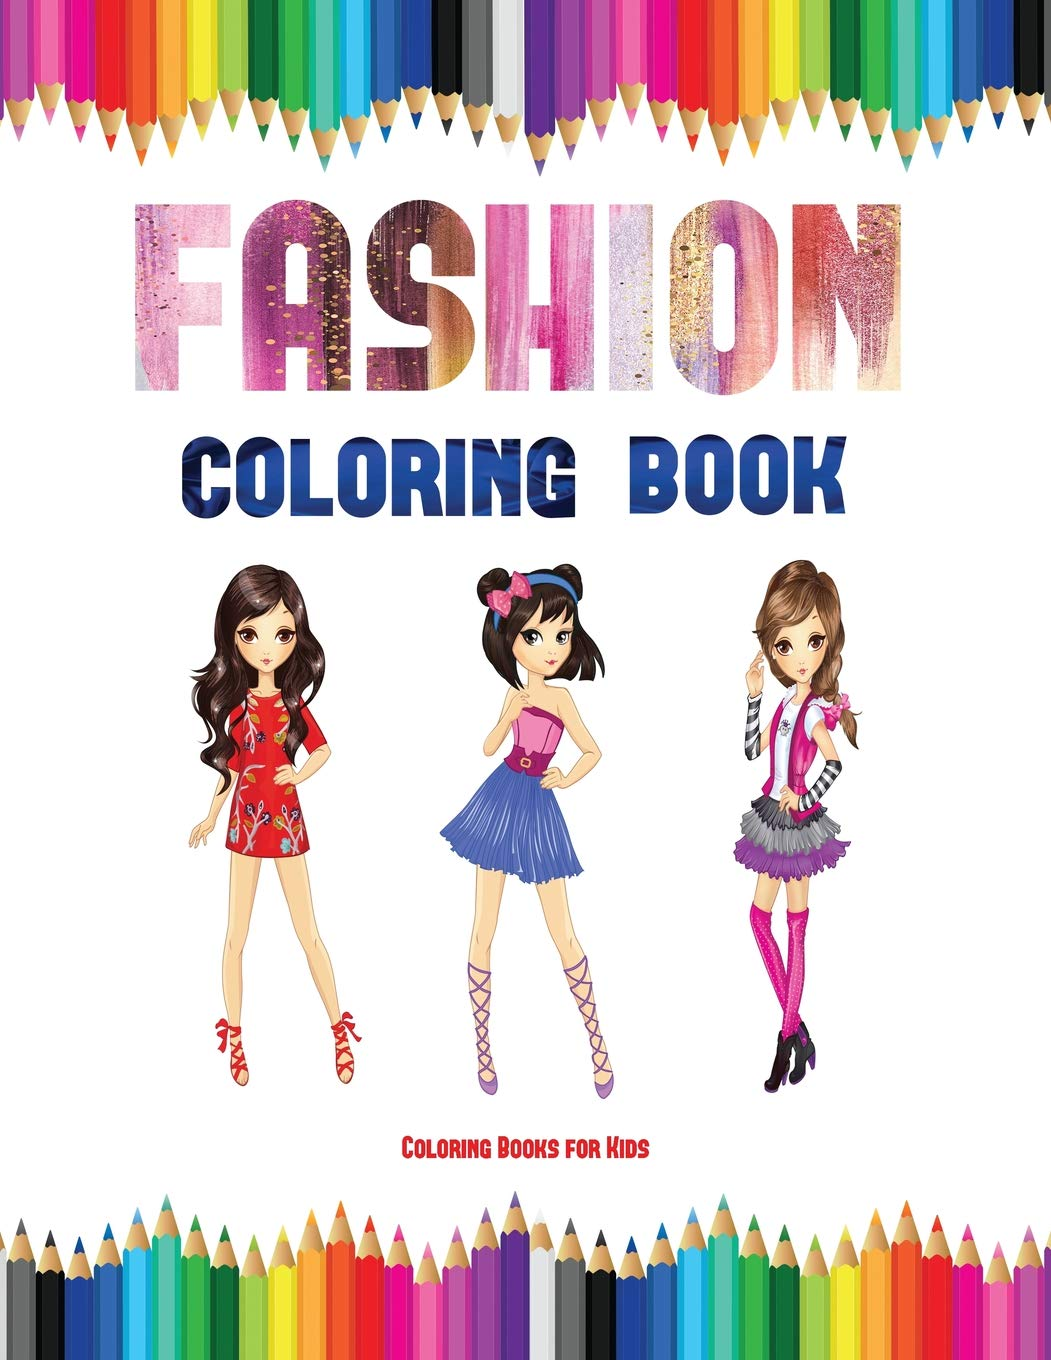 Coloring Books For Kids Fashion Coloring Book 40 Fashion Coloring Pages Manning James 9781838563080 Amazon Com Books